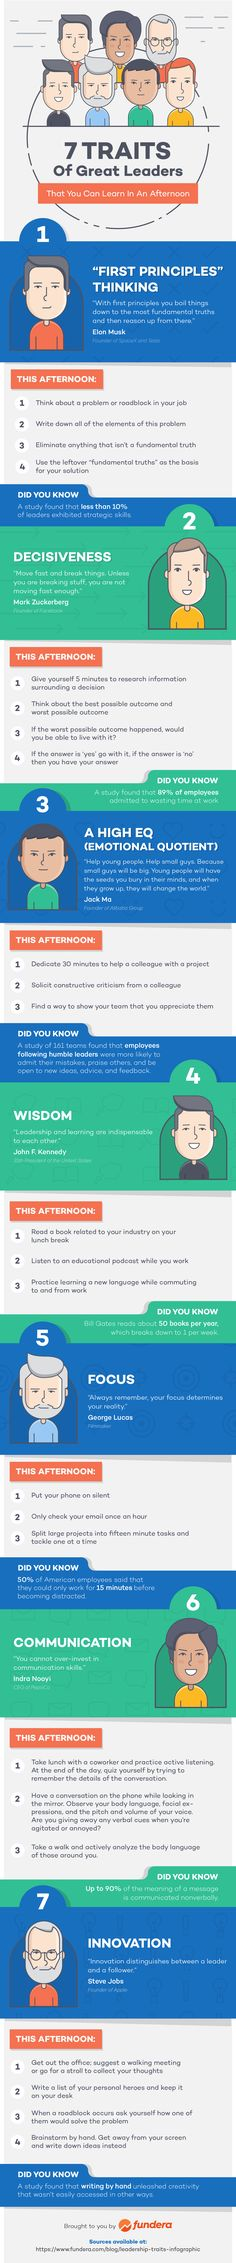 7 Leadership Traits That You Can Learn In An Afternoon - #Infographic